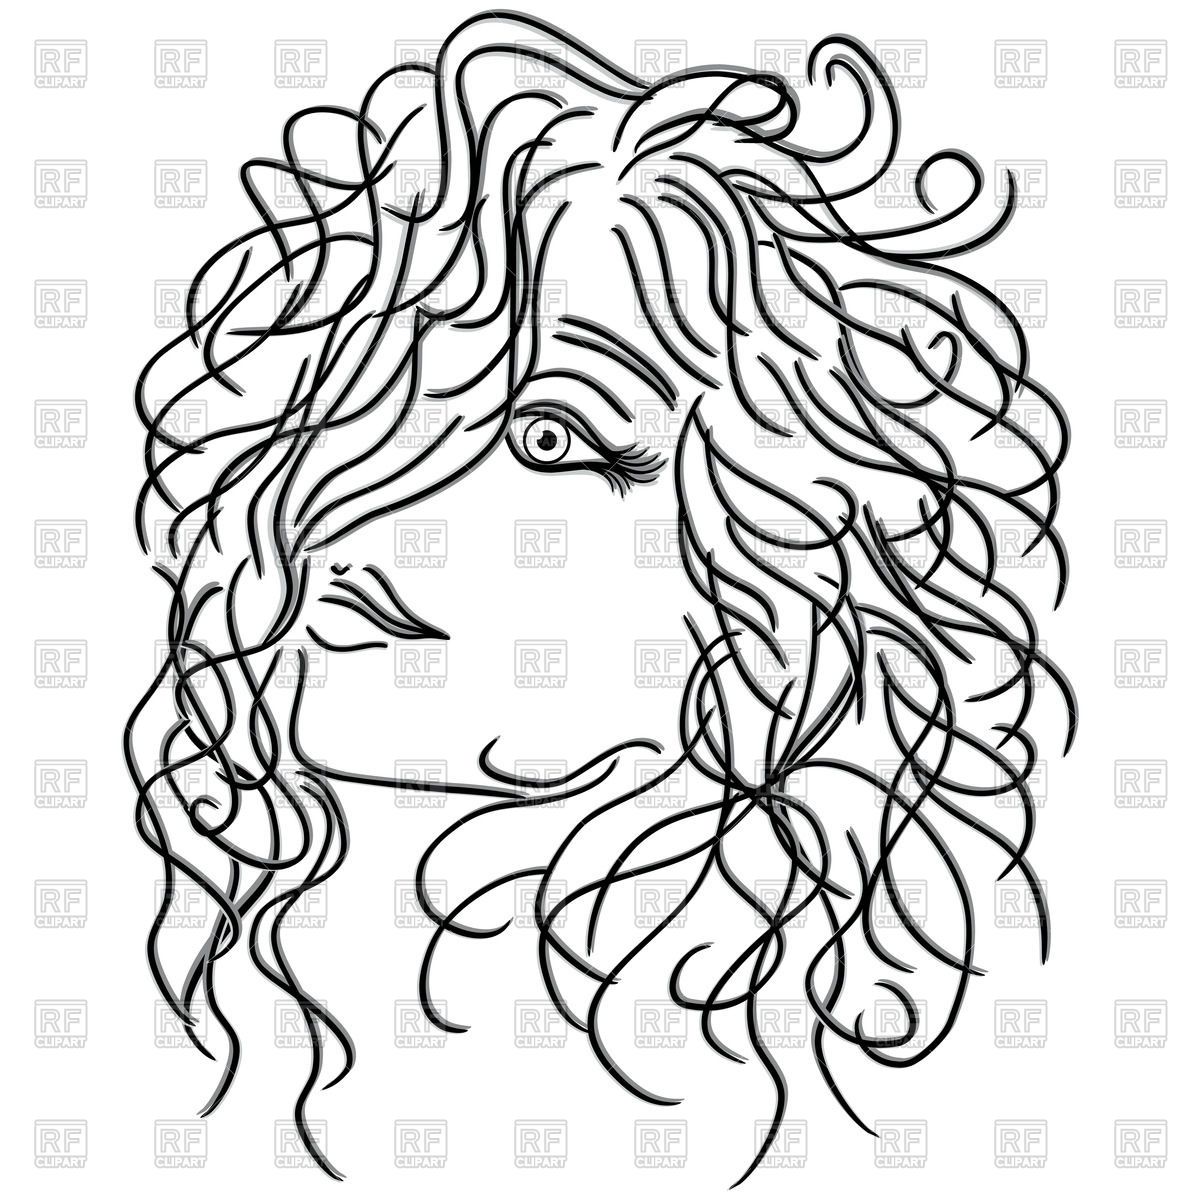 Girl with flowing curly hair, sketch Stock Vector Image.